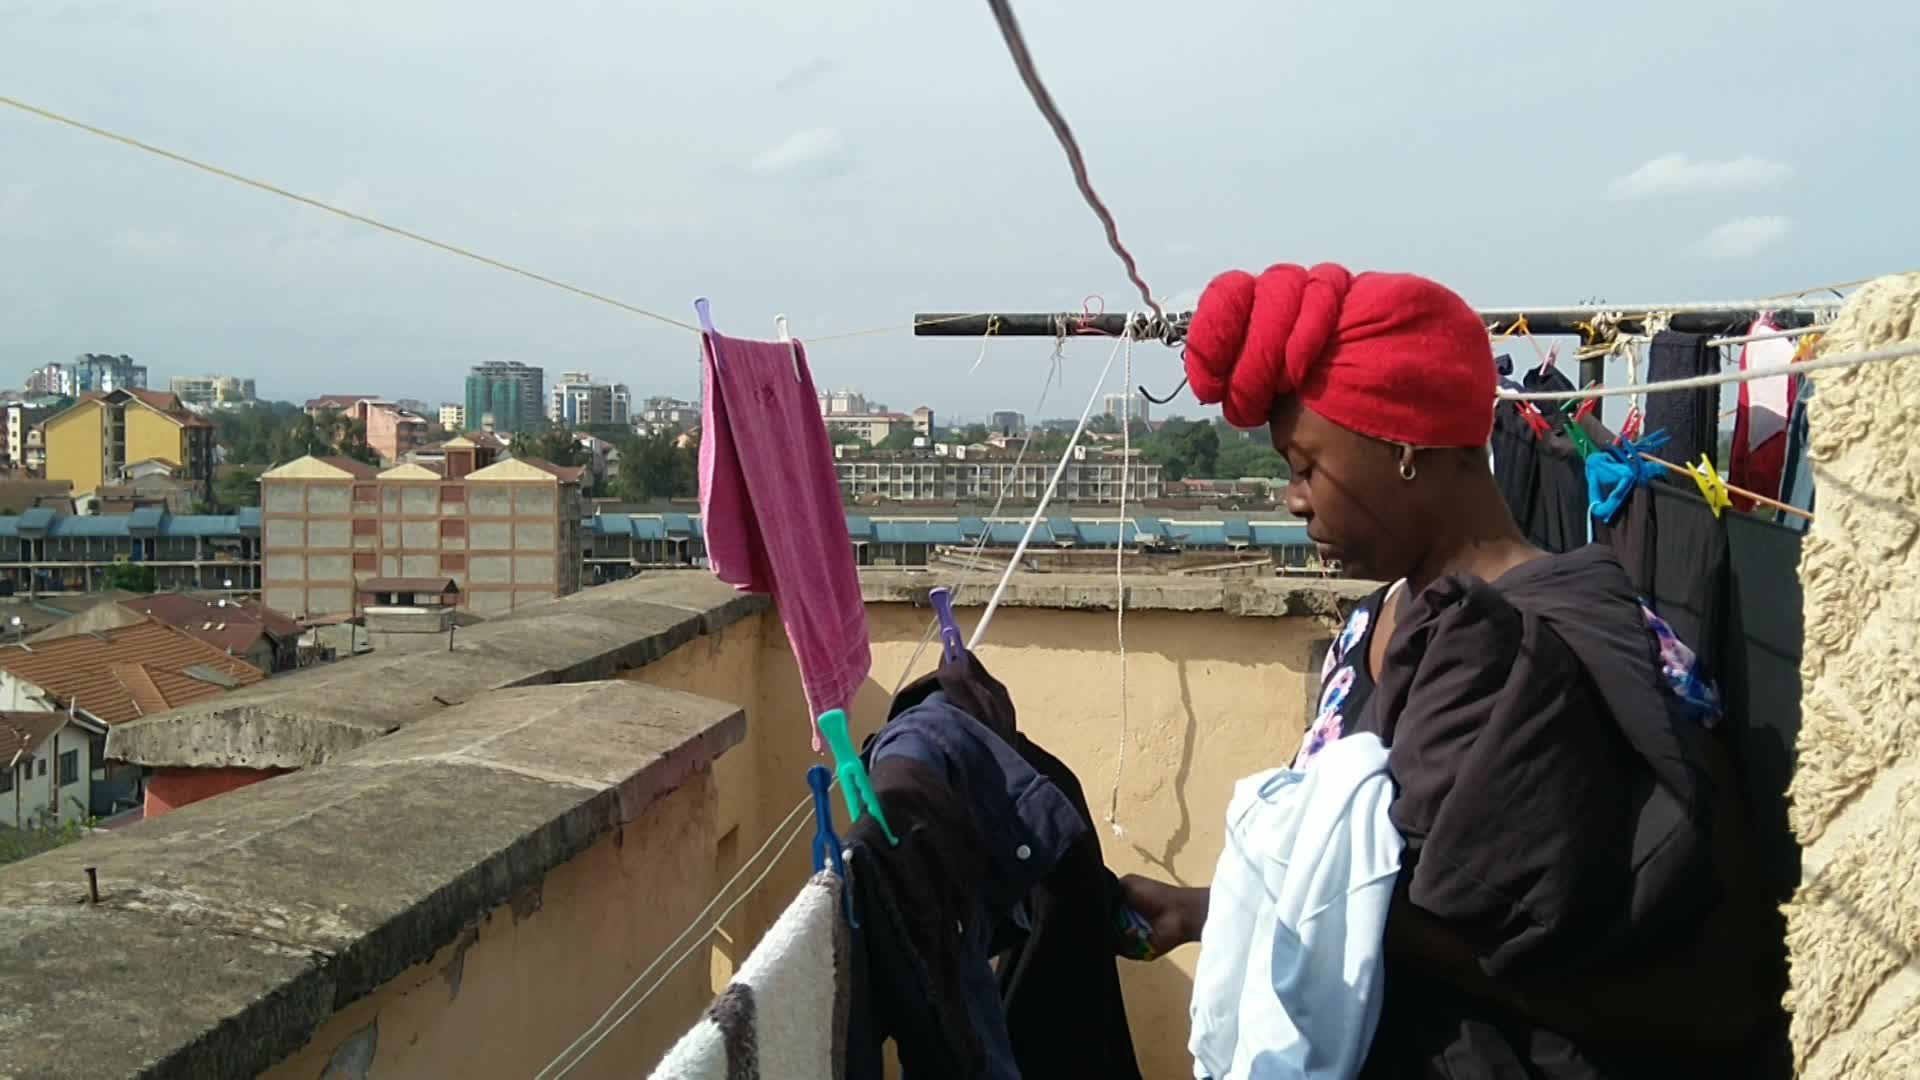 Taking Clothes Off The Line